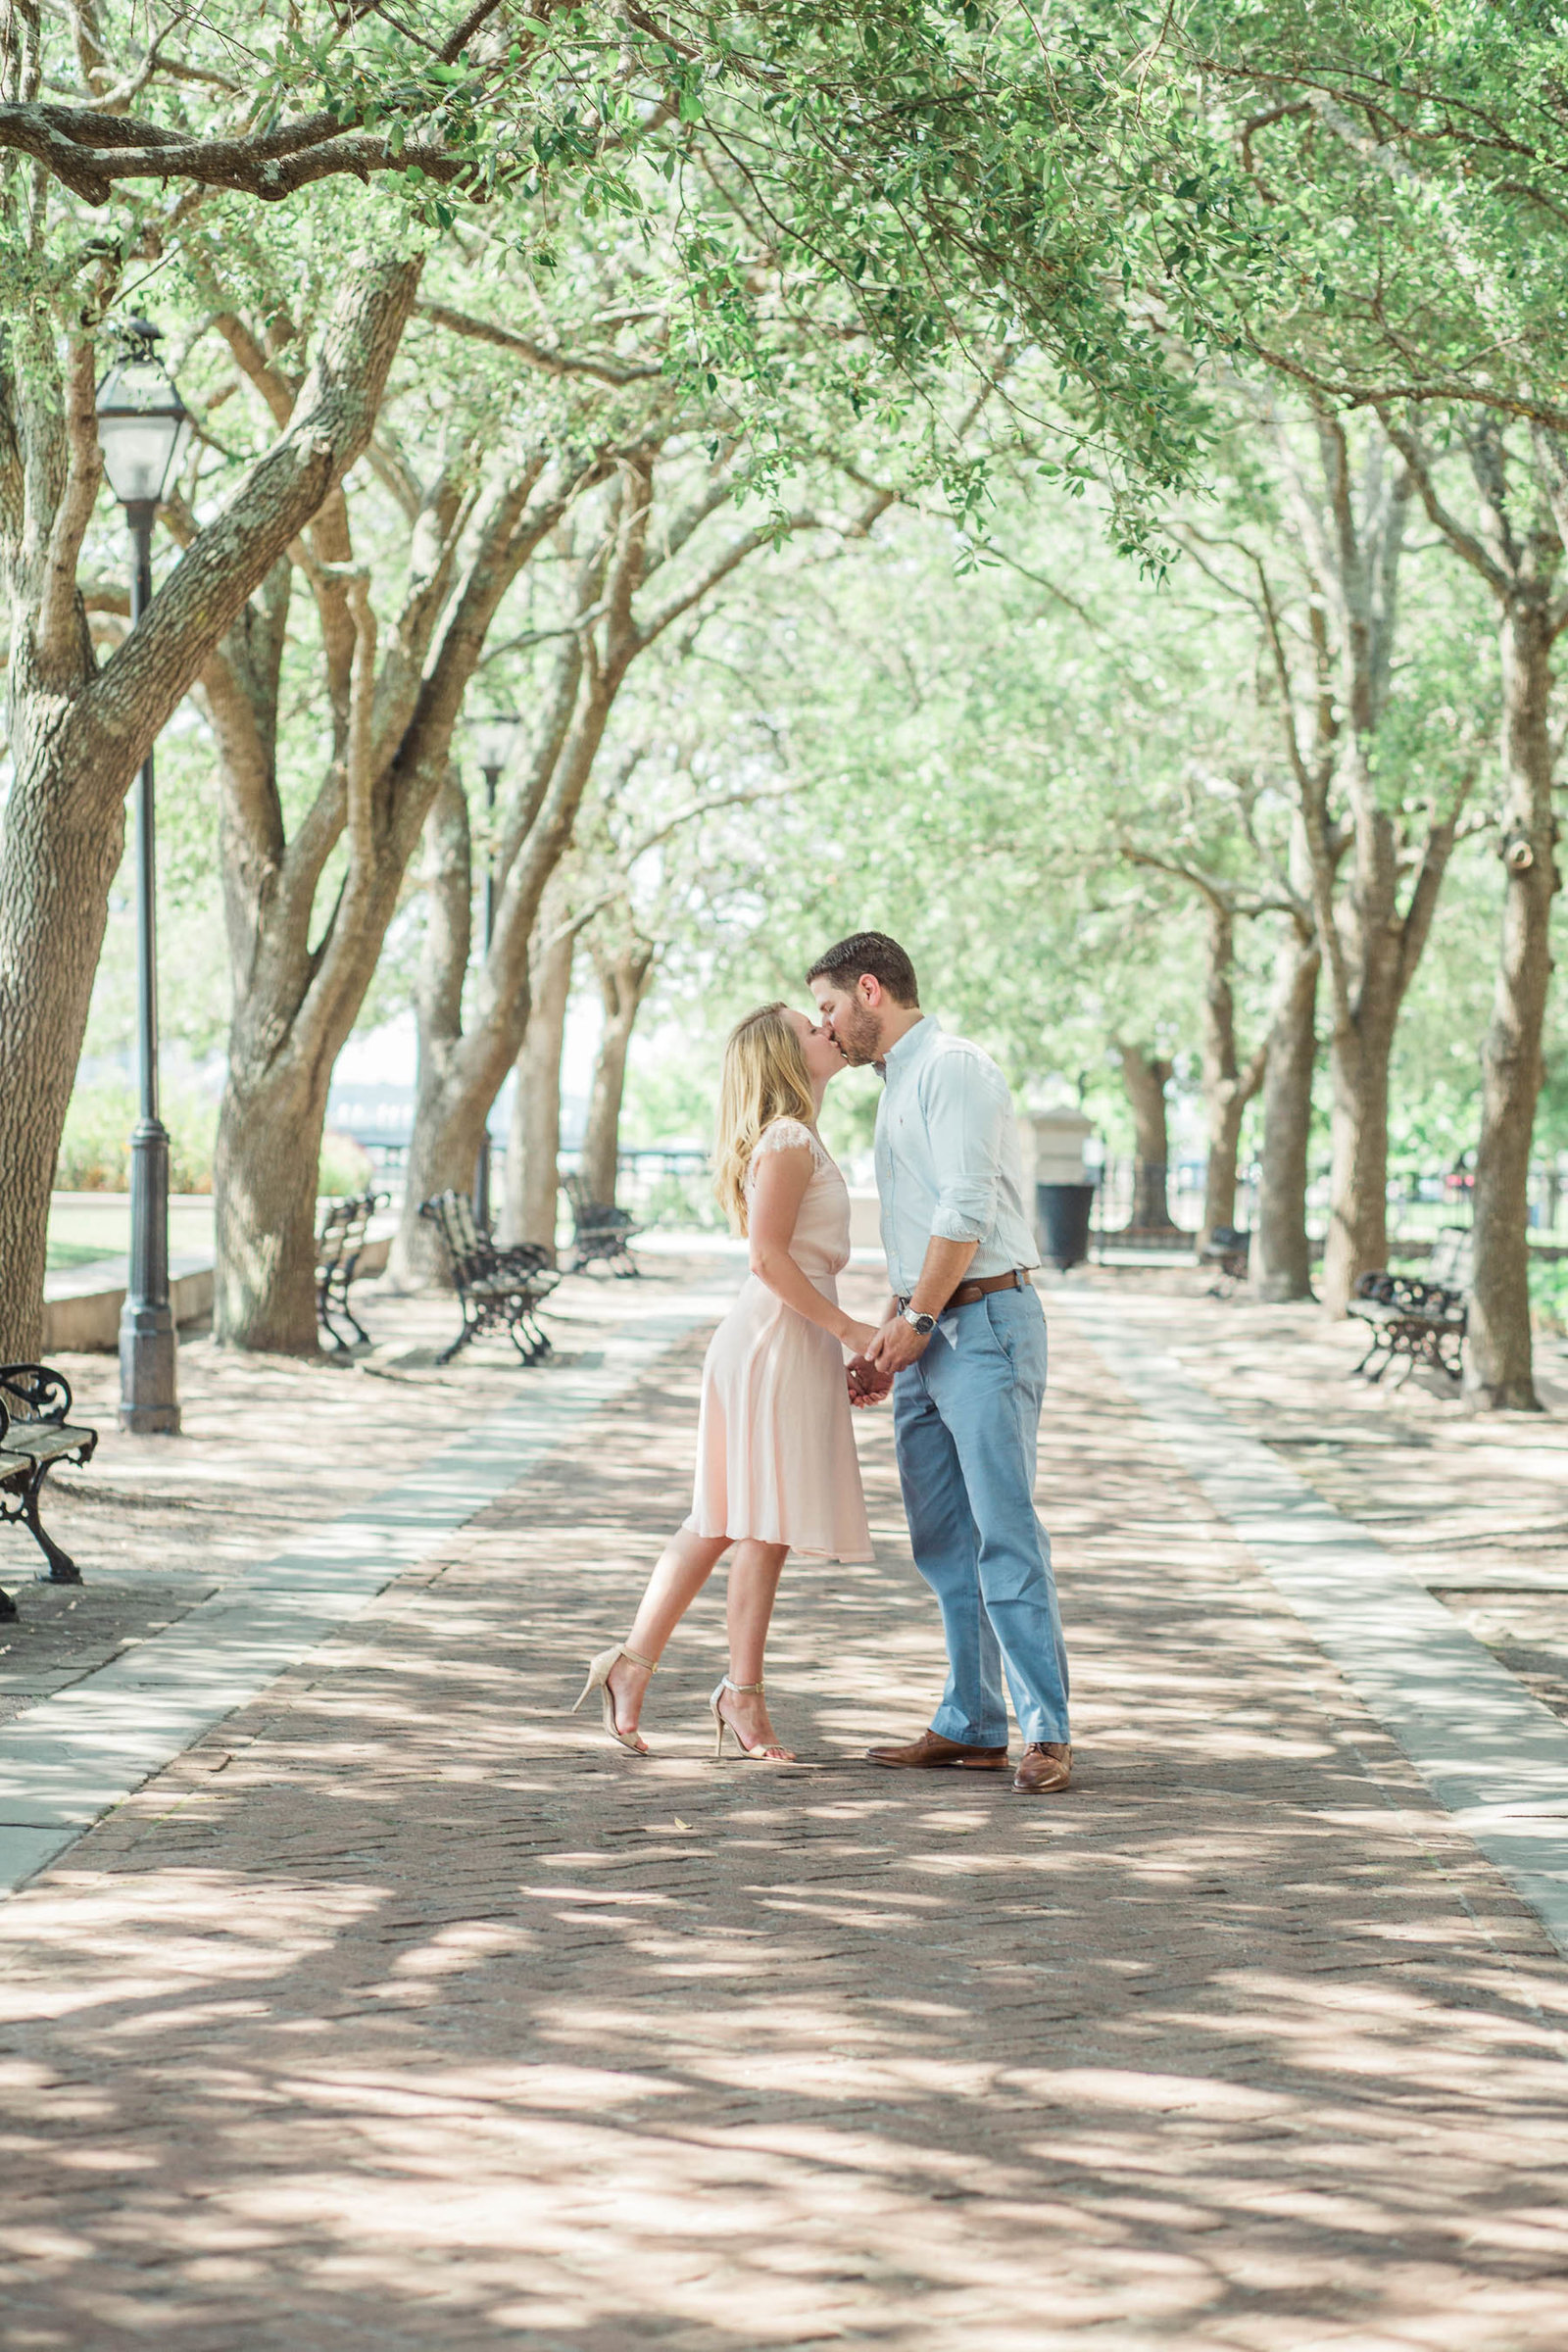 Engaged couple stroll down path under trees at the waterfront park, Downtown Charleston, South Carolina